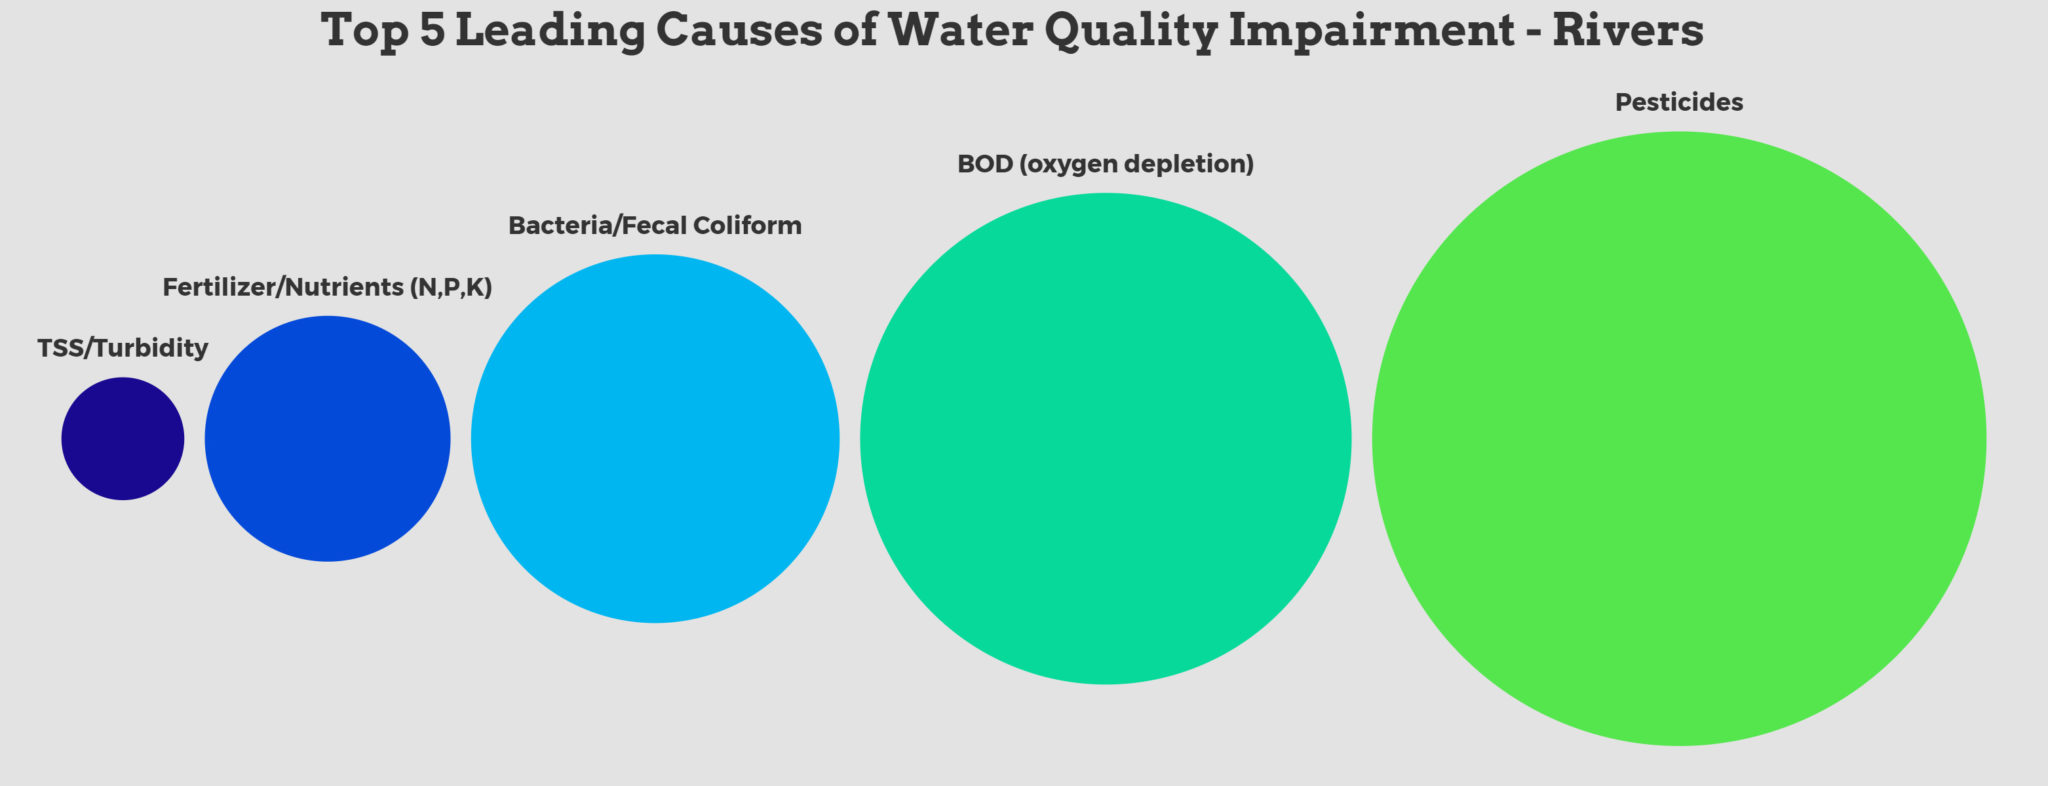 LEADING CAUSES OF WATER QUALITY IMPAIRMENT